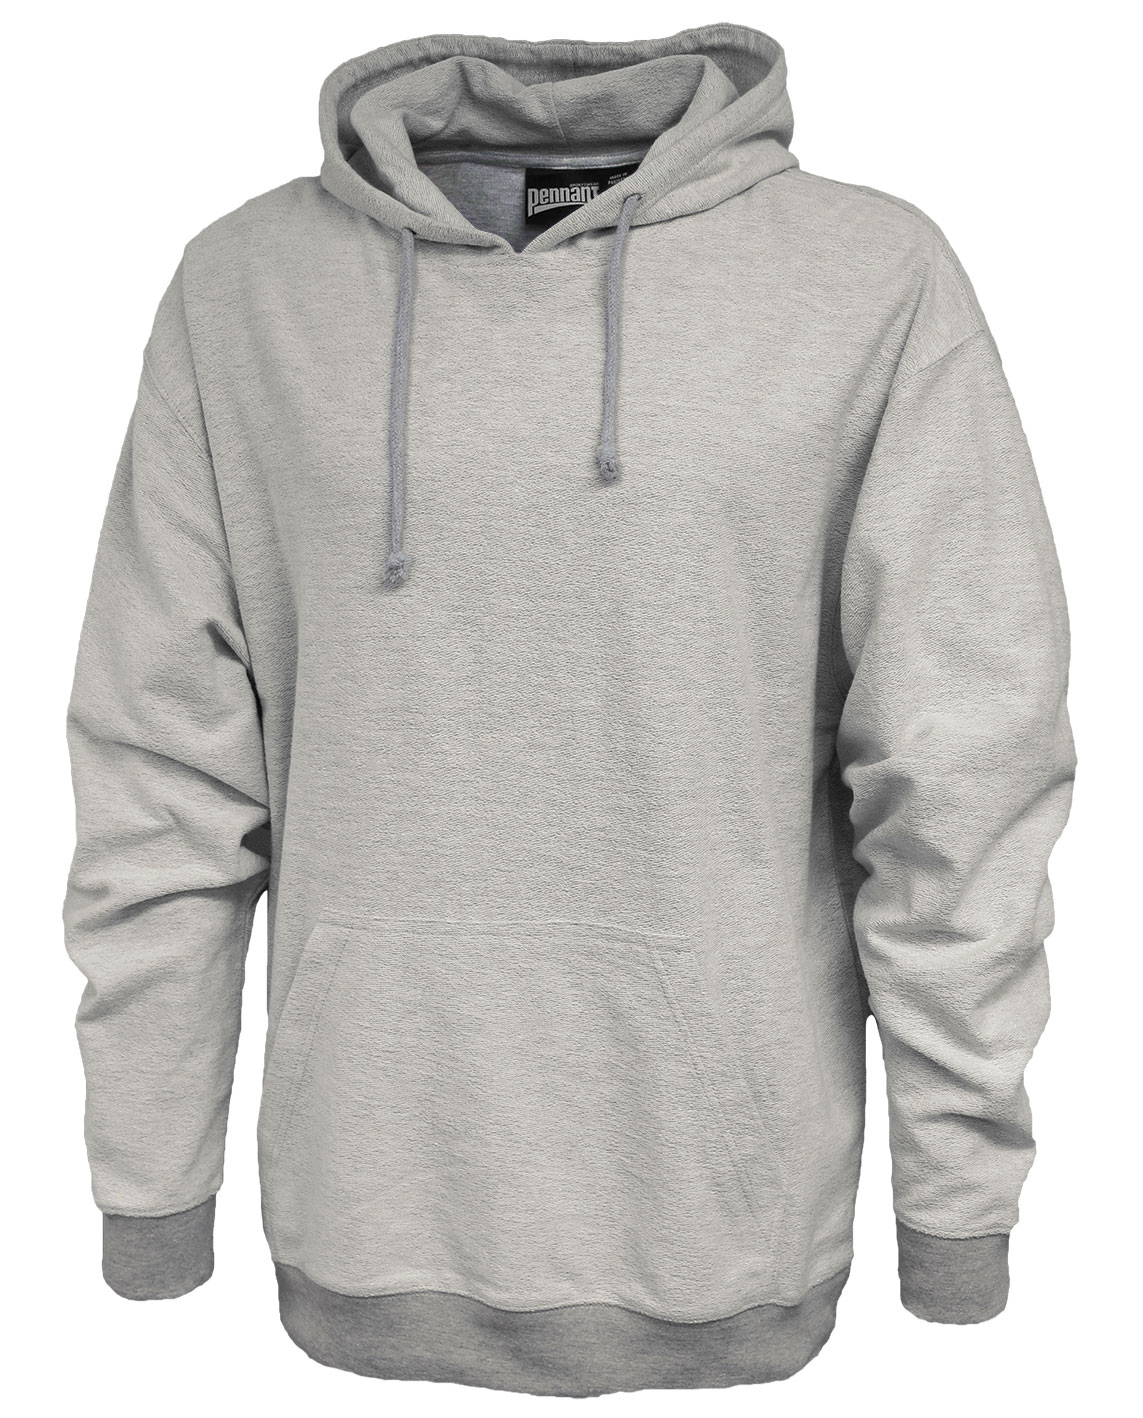 Inside-Out Fleece Hoodie